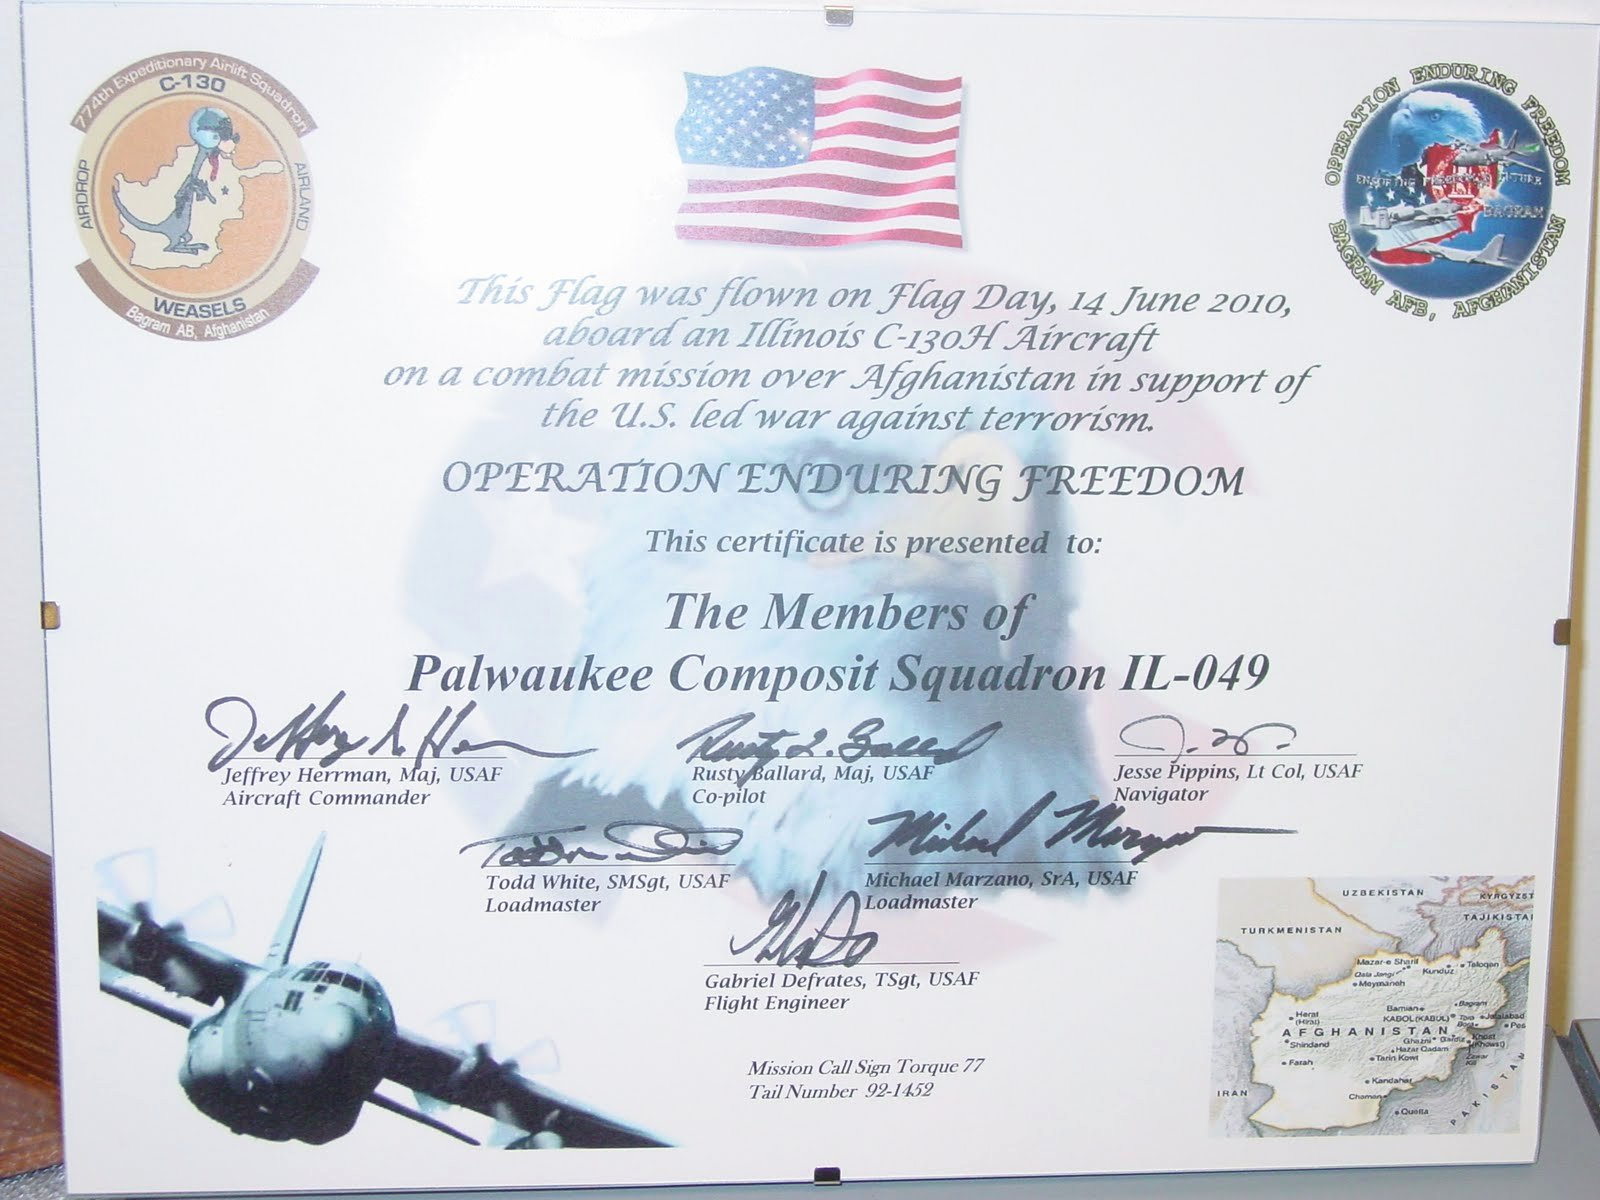 This Flag Was Flown Certificate Template New Palwaukee Posite Squadron Ang Member Presents Flag and